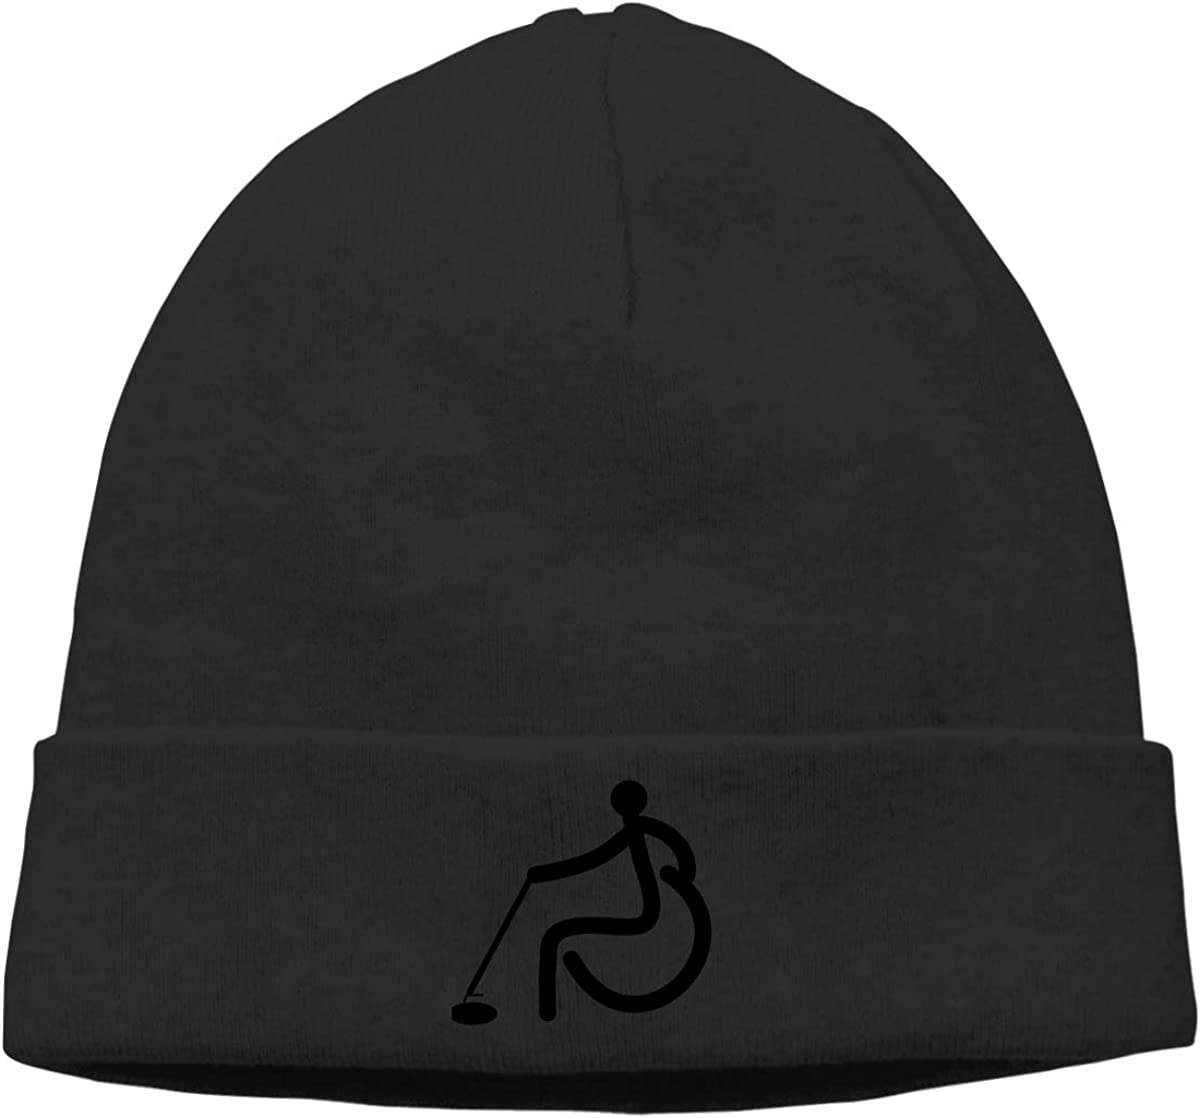 Nskngr Wheelchair Curling Cap Men Winter Summer Oversized Baggy Slouch Beanie Hats Winter Beanie